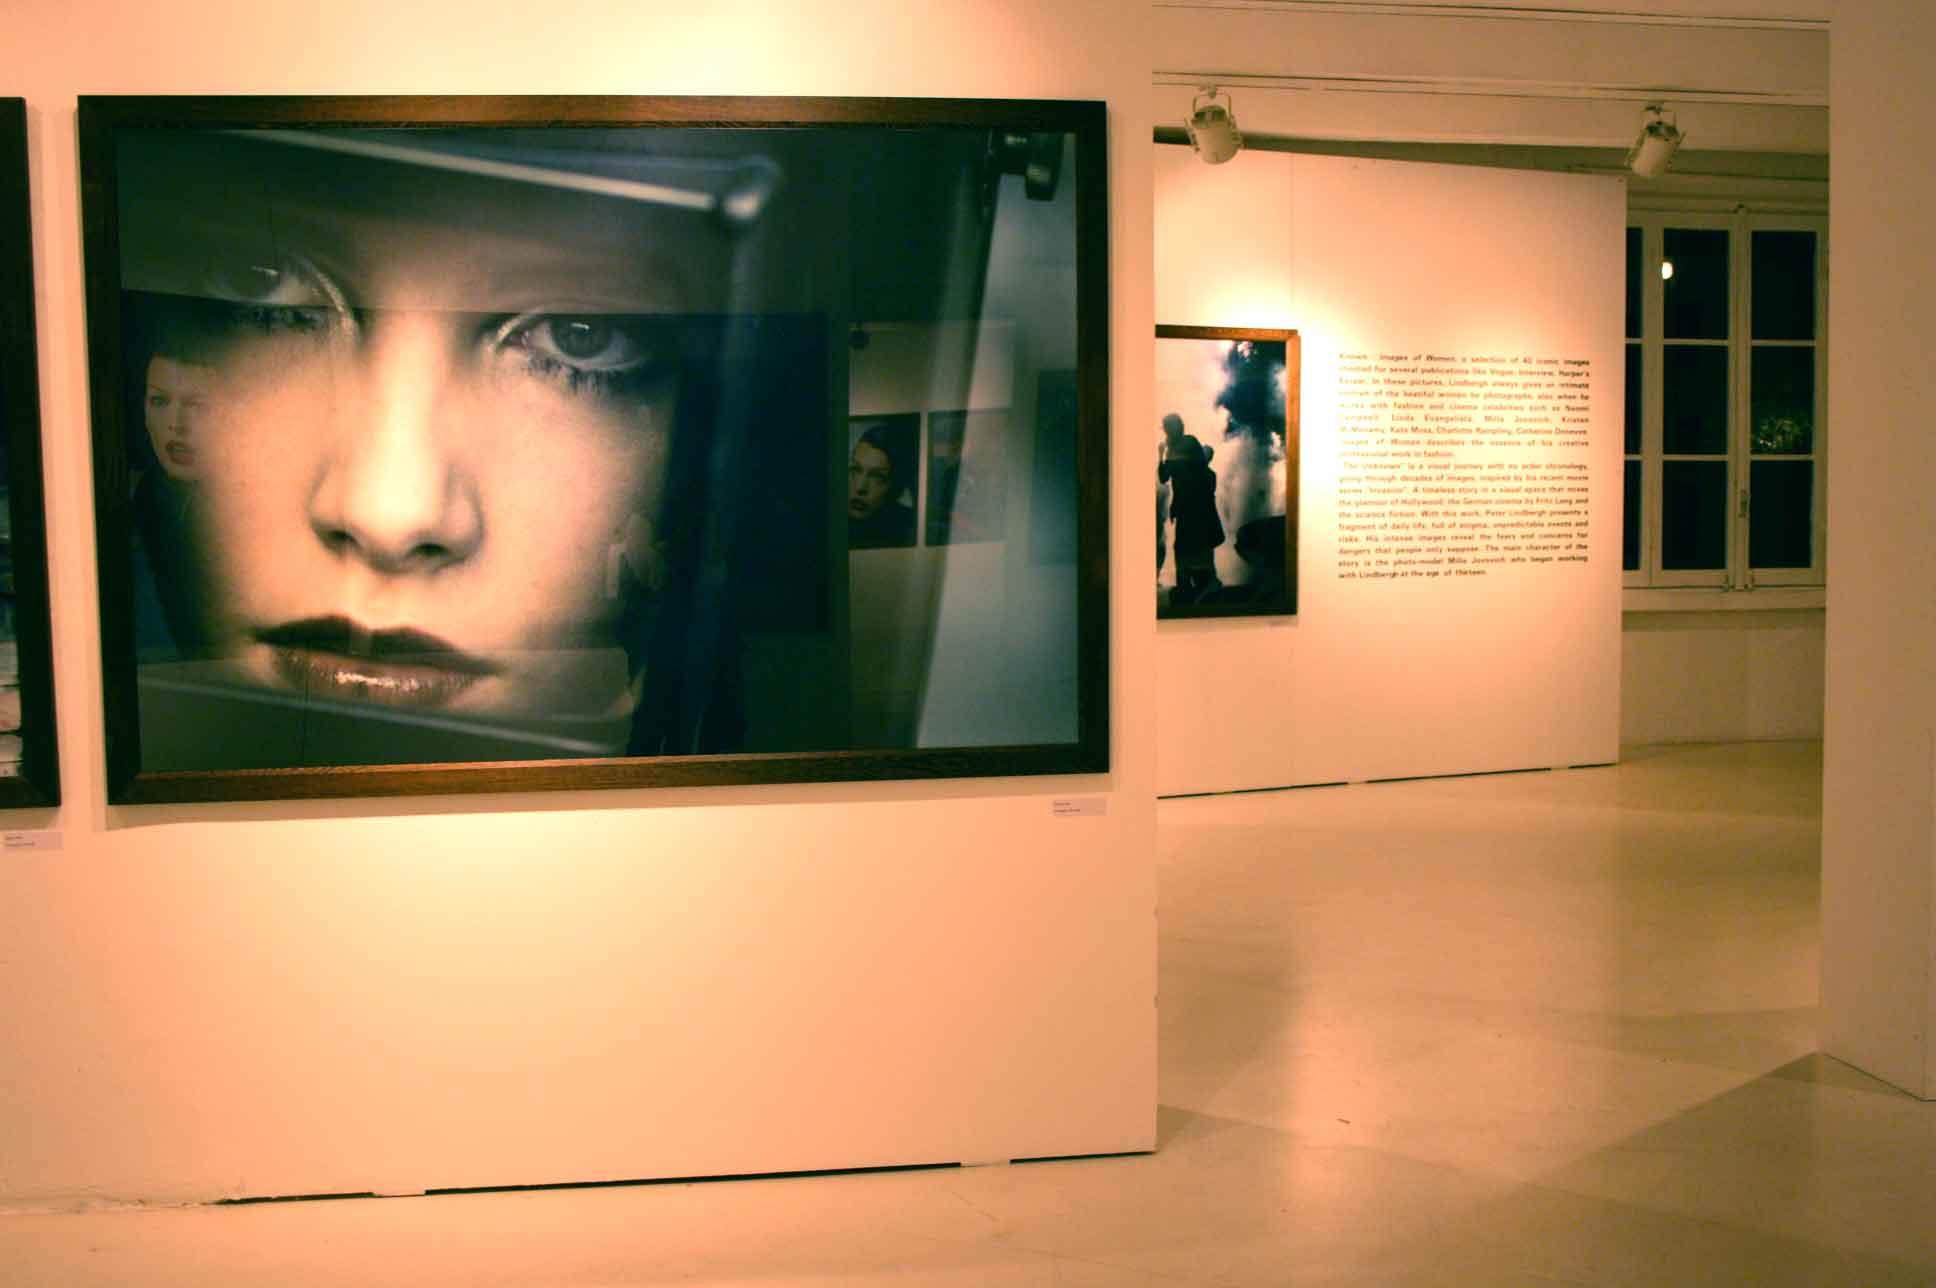 Peter Lindbergh - Known and The Unknown - veduta della mostra presso Carla Sozzani, Milano 2012